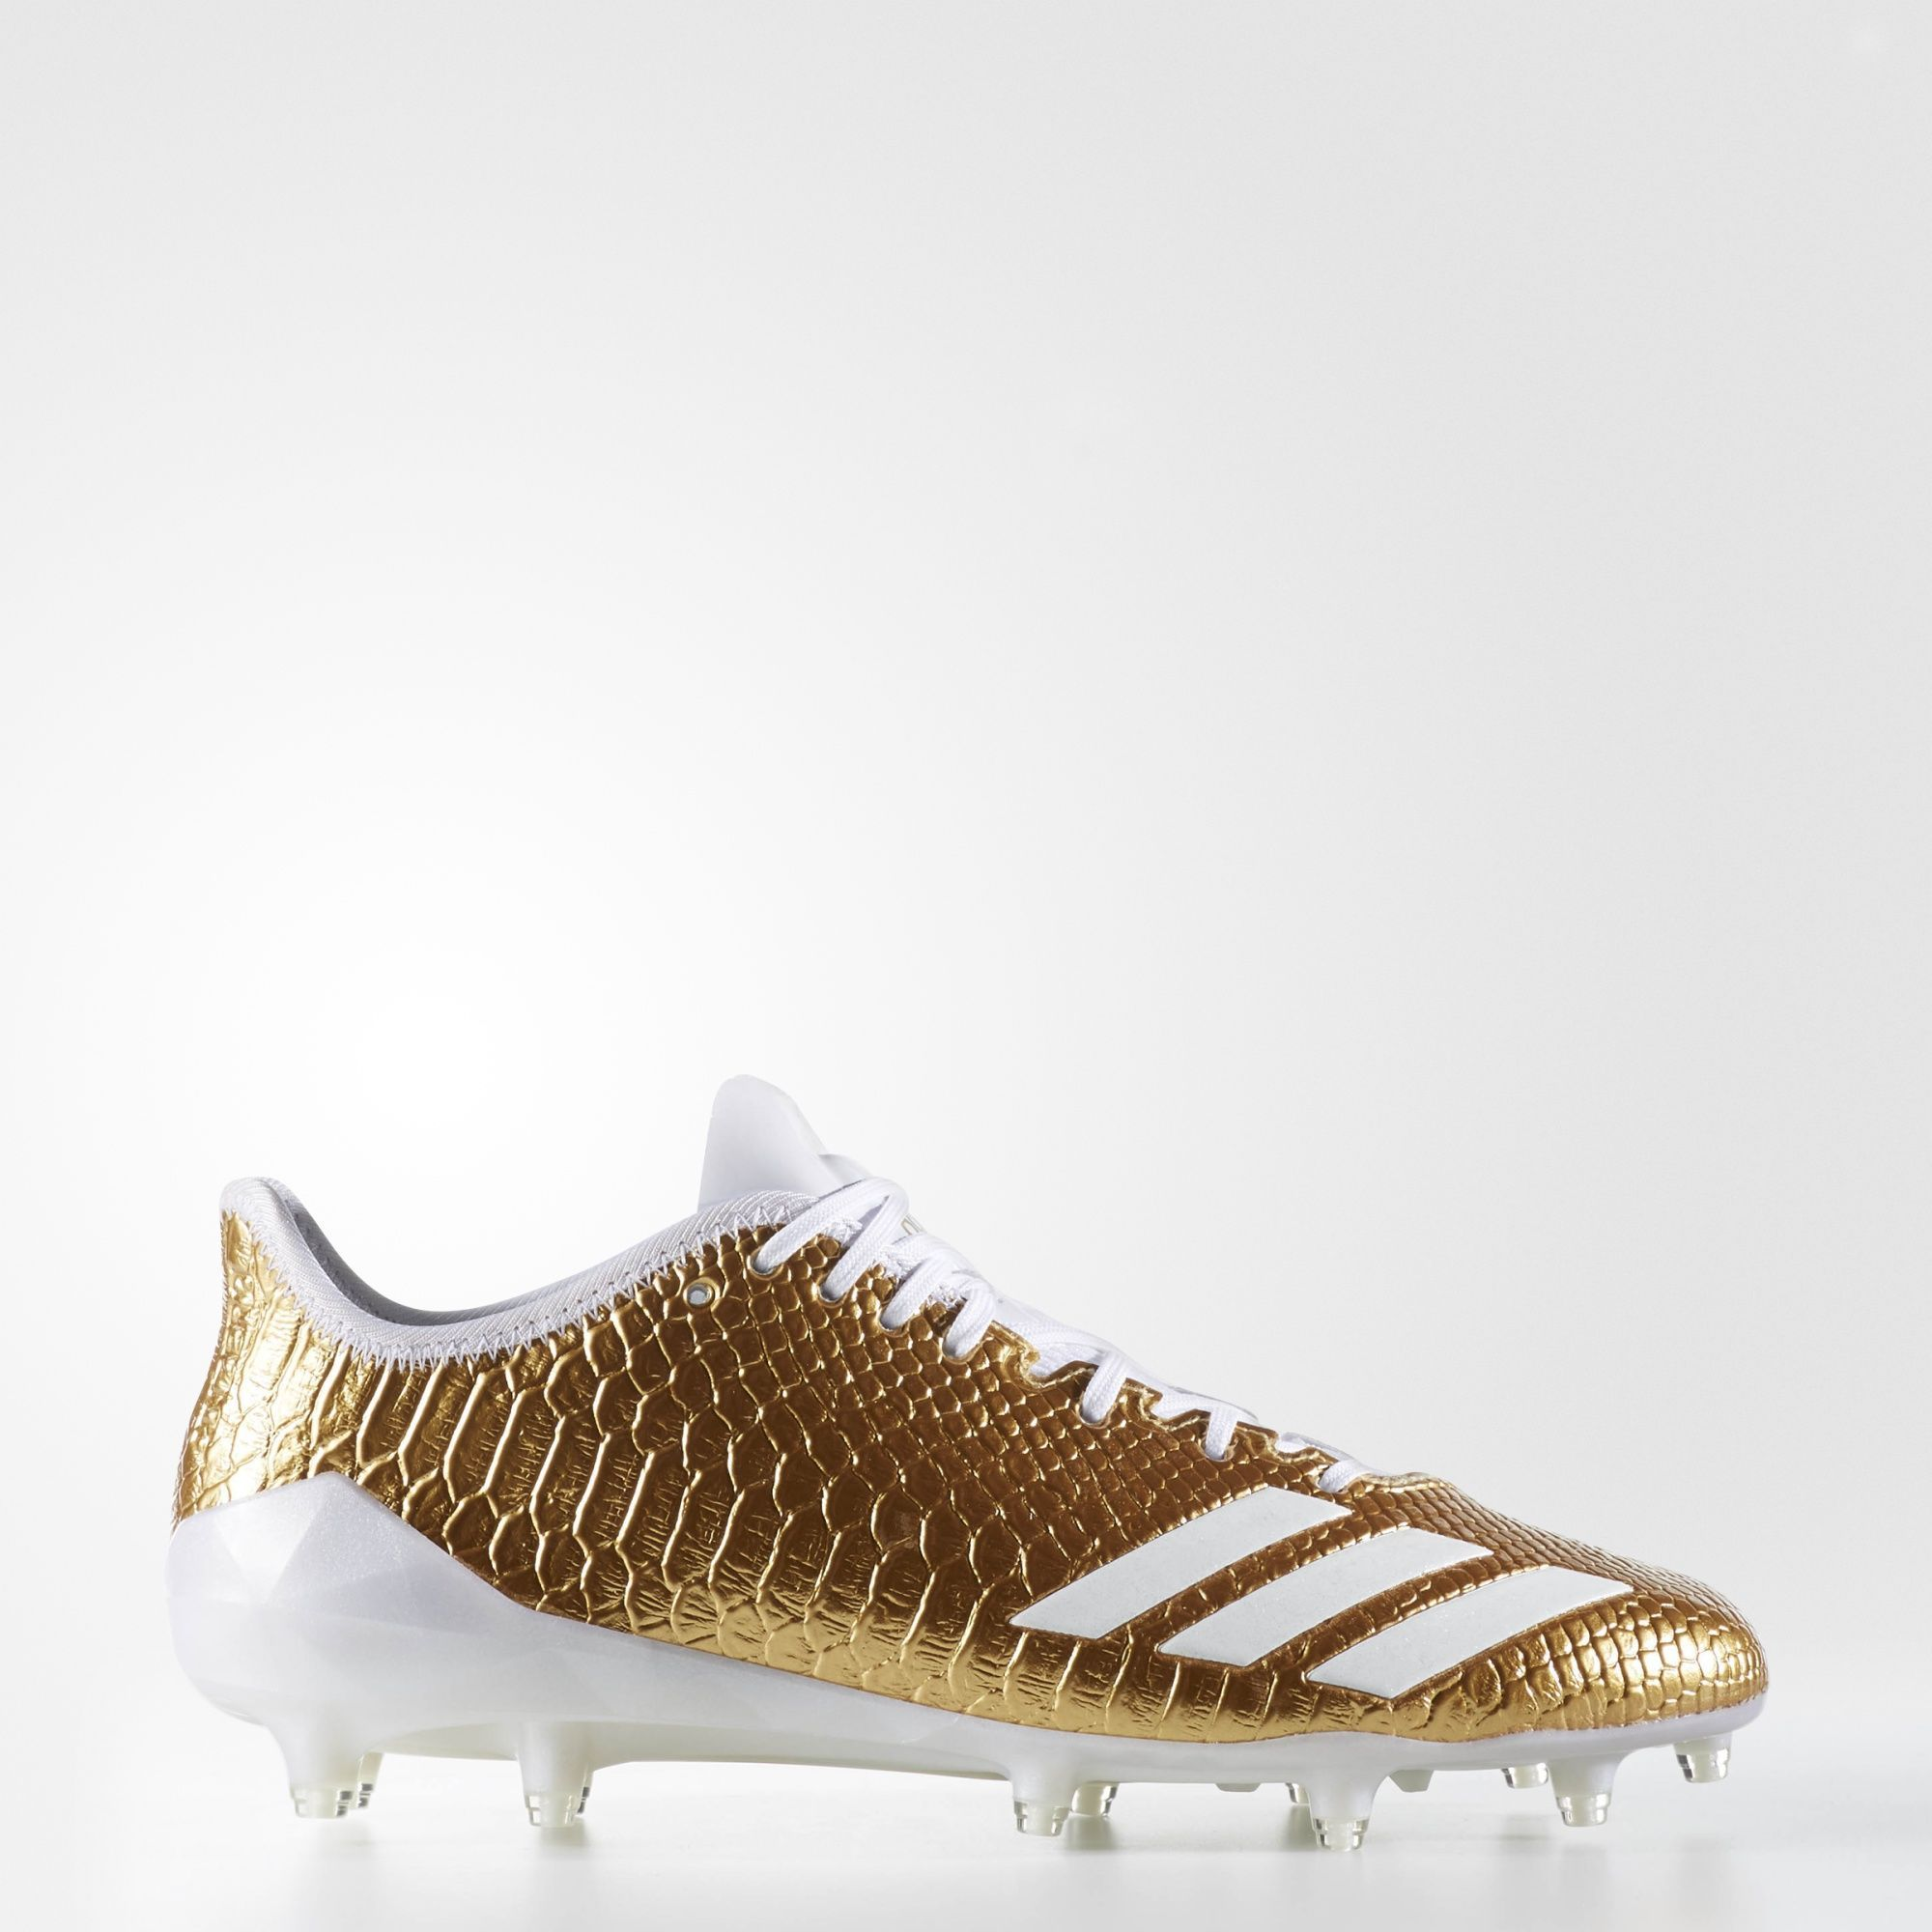 Adidas Adizero 5 Star 6 0 Gold Cleats Mens Football Cleats Gold Football Cleats Cleats